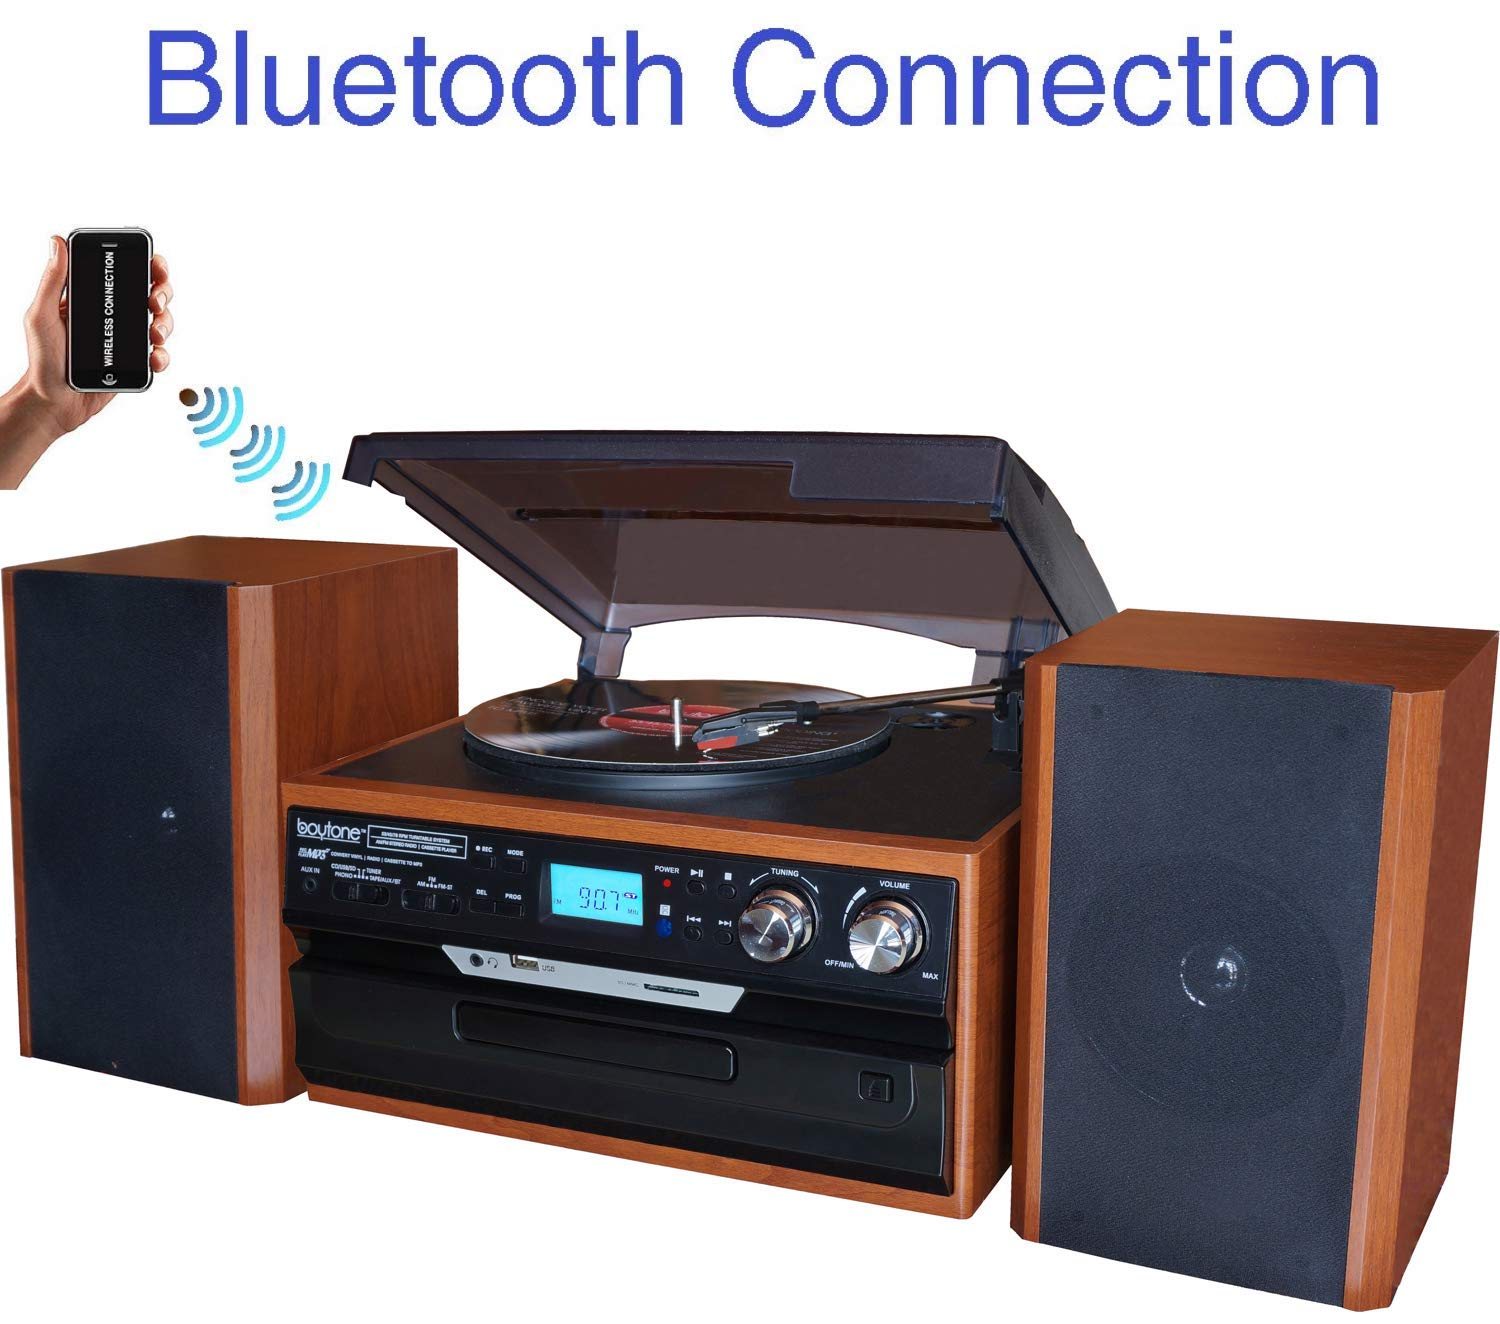 Boytone BT-24MB Bluetooth Classic Style Record Player Turntable with AM/FM Radio, CD/Cassette Player, 2 Separate Stereo Speakers, Record from Vinyl, Radio, and Cassette to MP3, SD Slot, USB, AUX. by Boytone